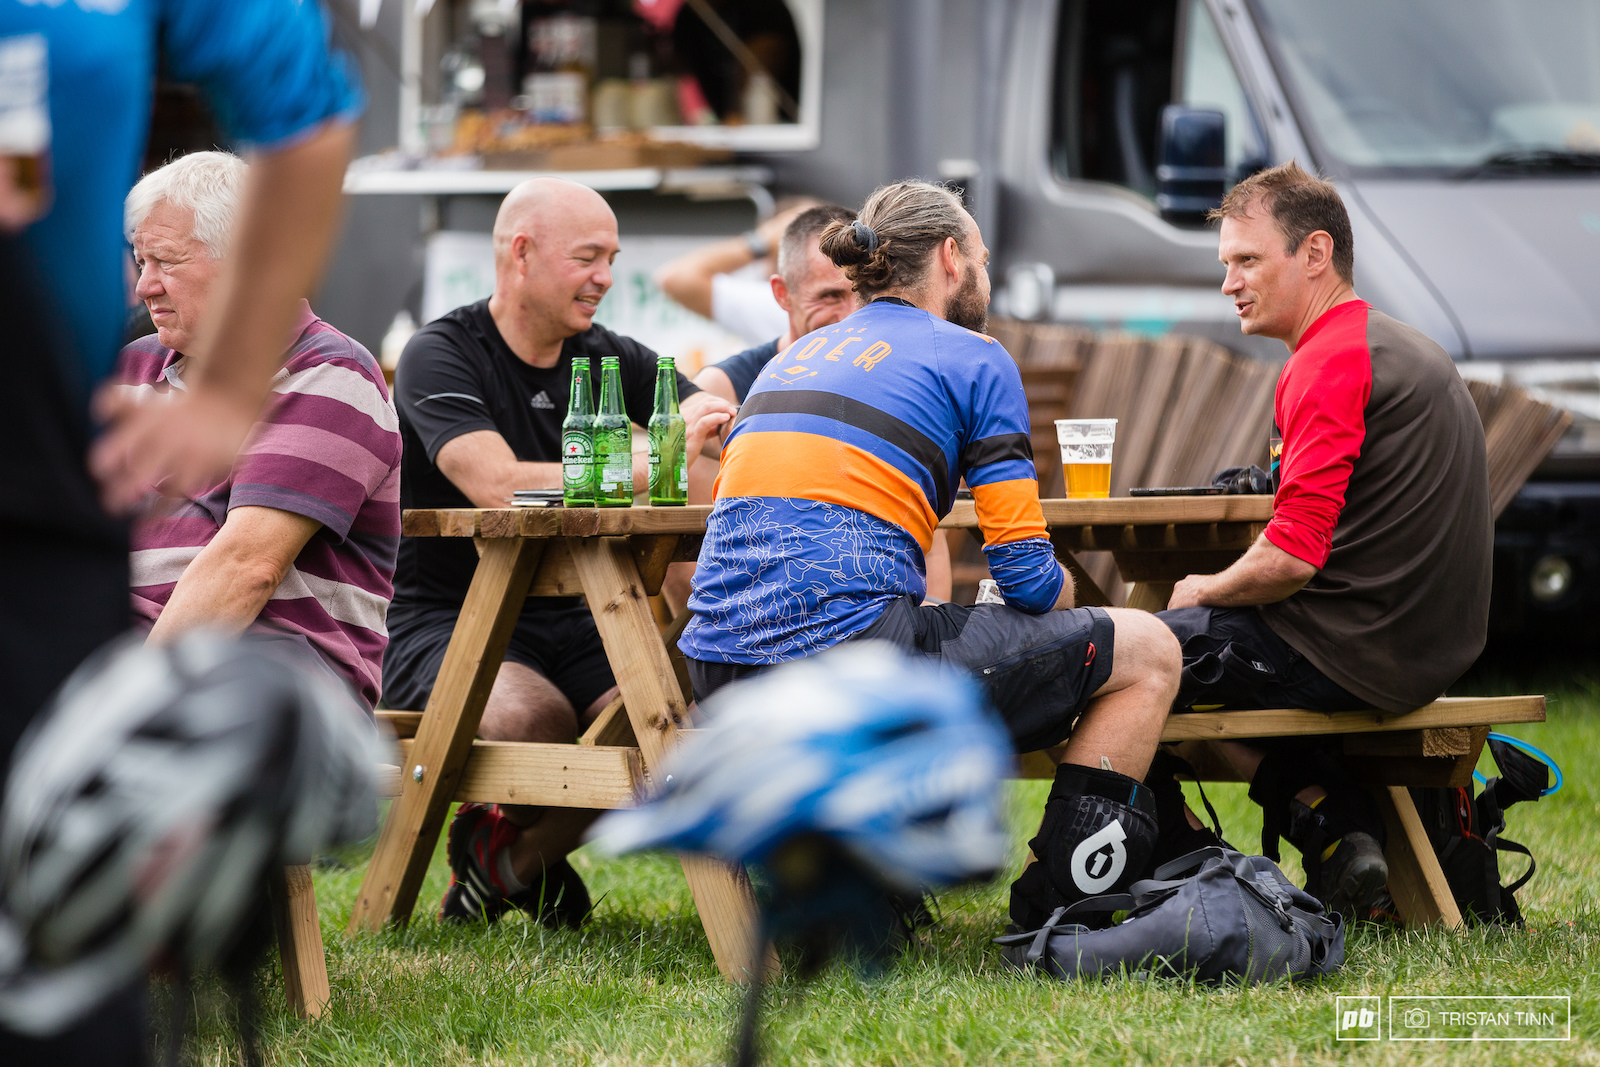 Riders were able to enjoy the sunshine and share their stories over a cold one